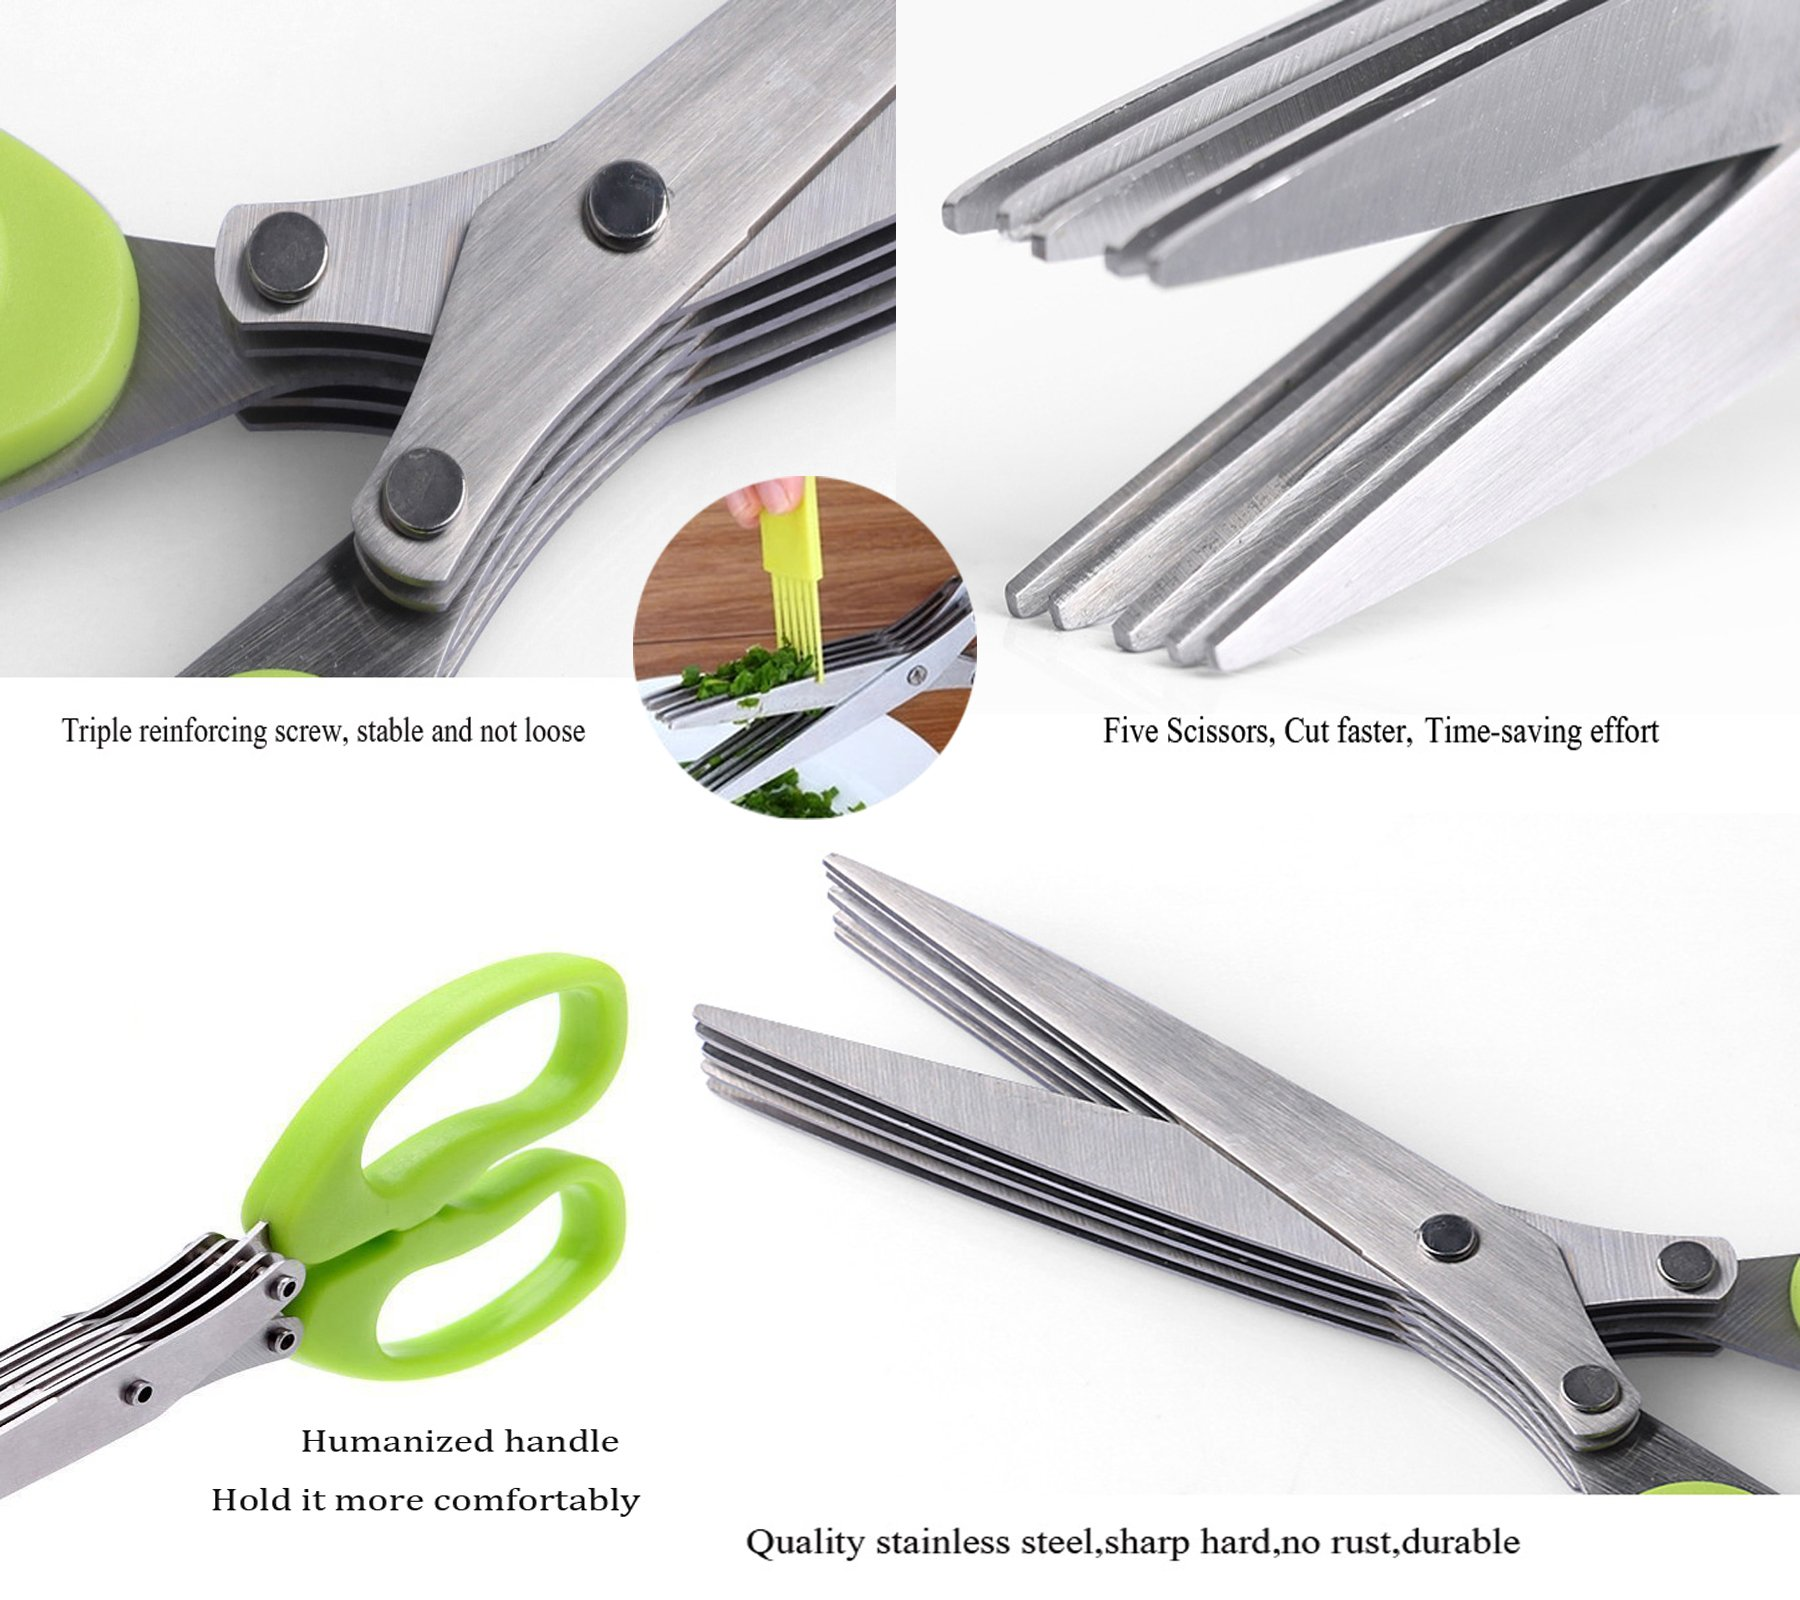 Herb Scissors, ProCIV Kitchen Shears 5 Blades Stainless Steel Herb Scissors with Cleaning Brush (Green)